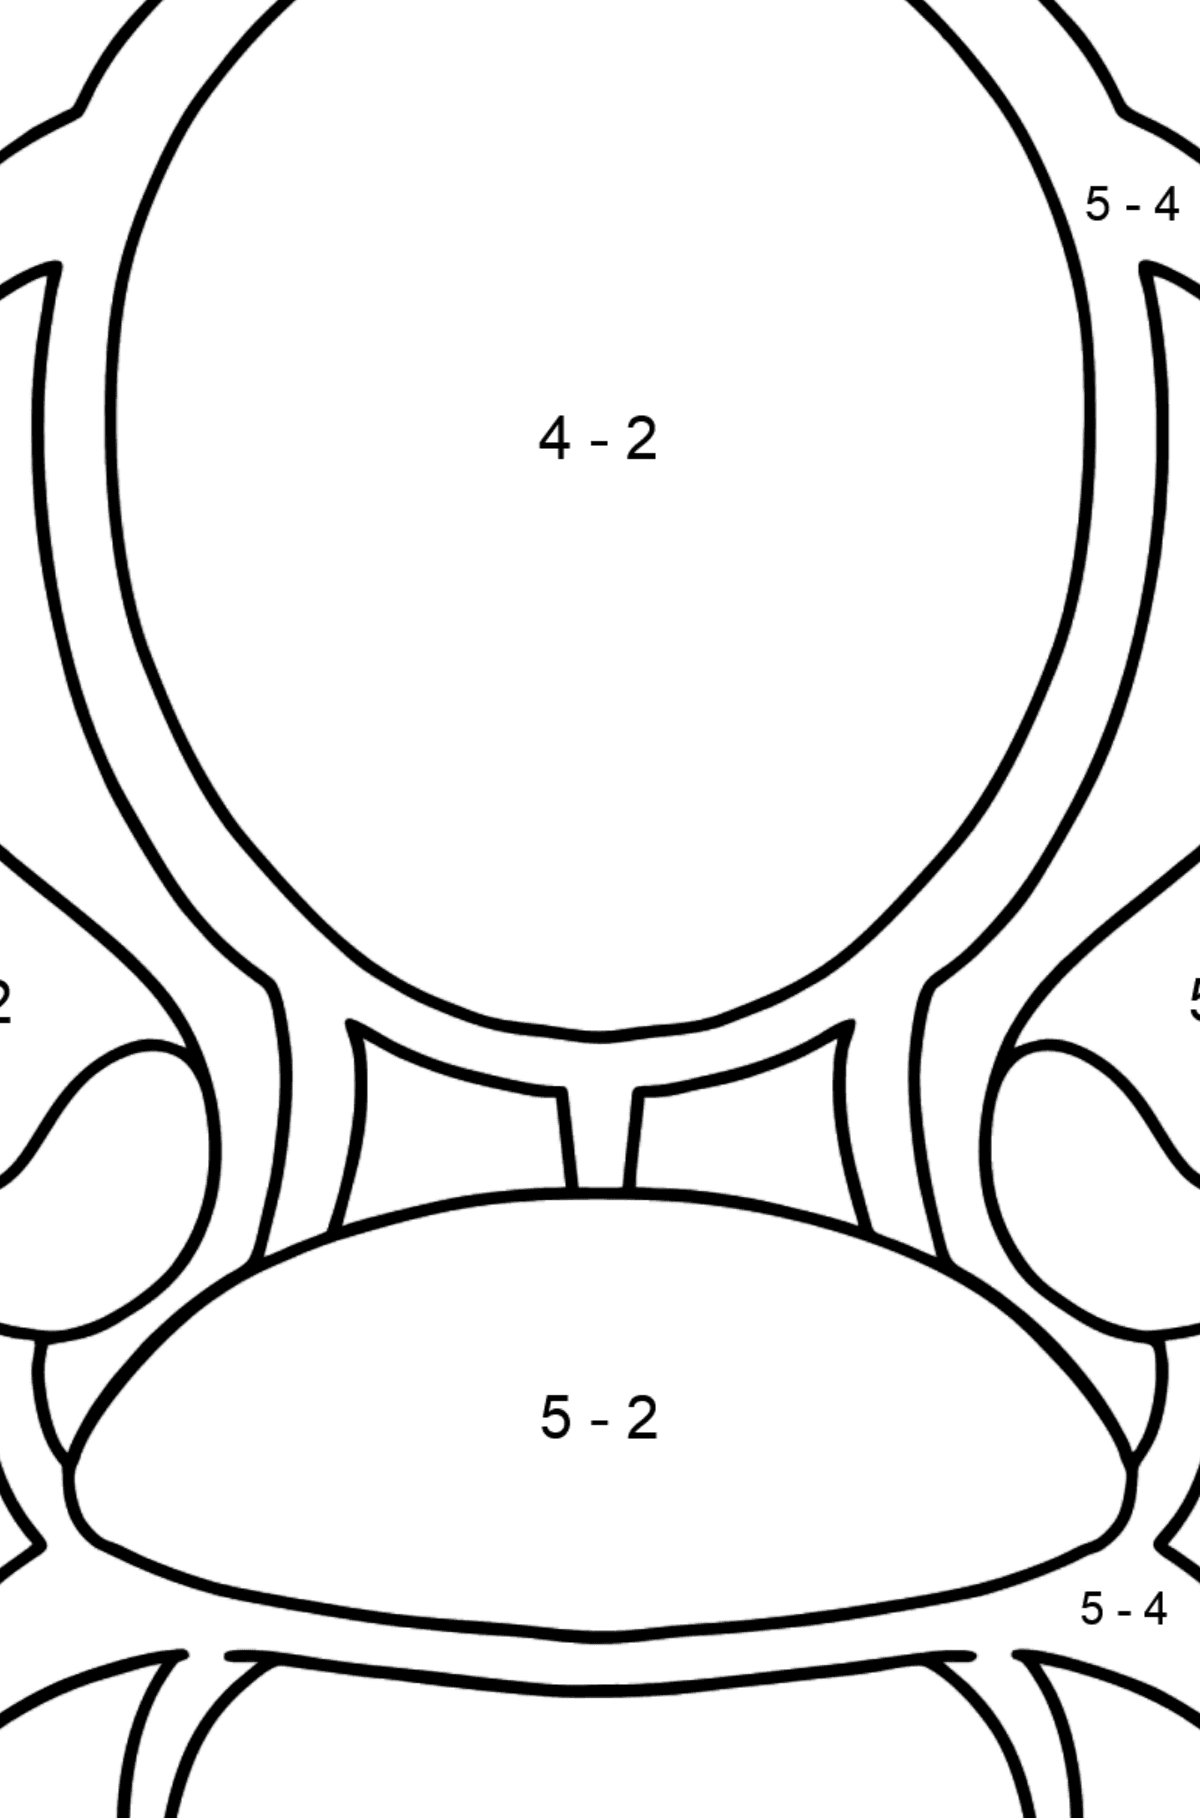 Soft Chair coloring page - Math Coloring - Subtraction for Kids